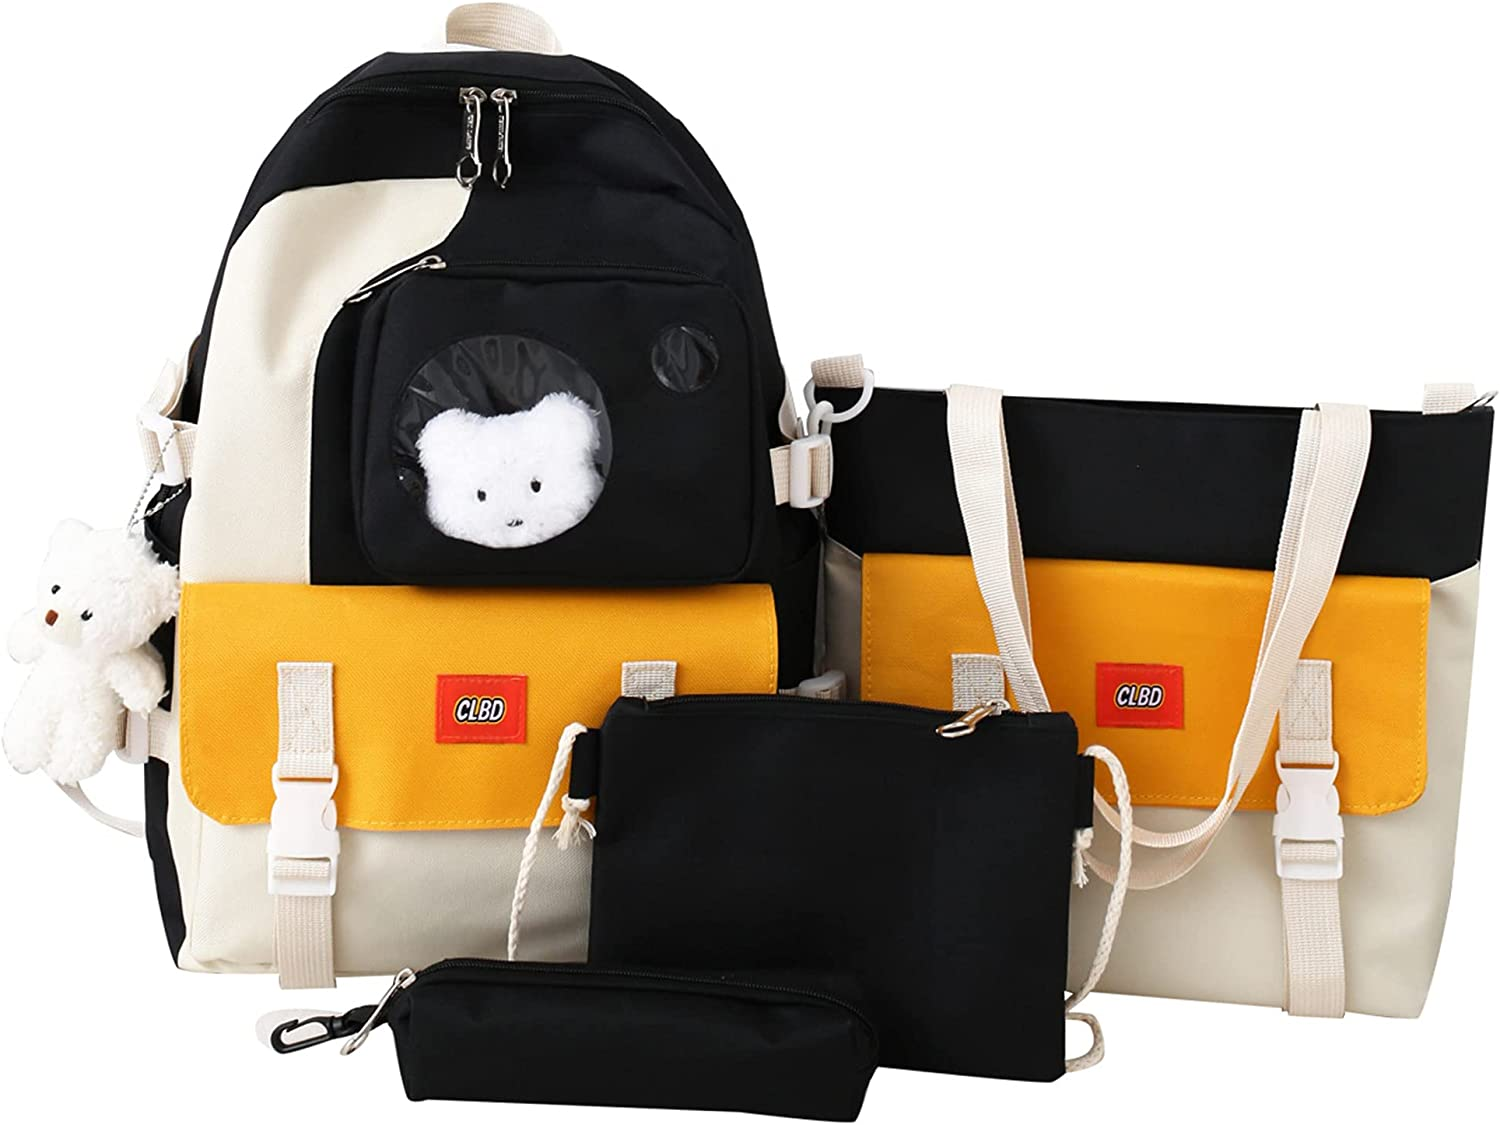 4pcs School Bags Set Kawaii Denver Mall Backpacks Lunch with Bag Ranking integrated 1st place Pendant Pe